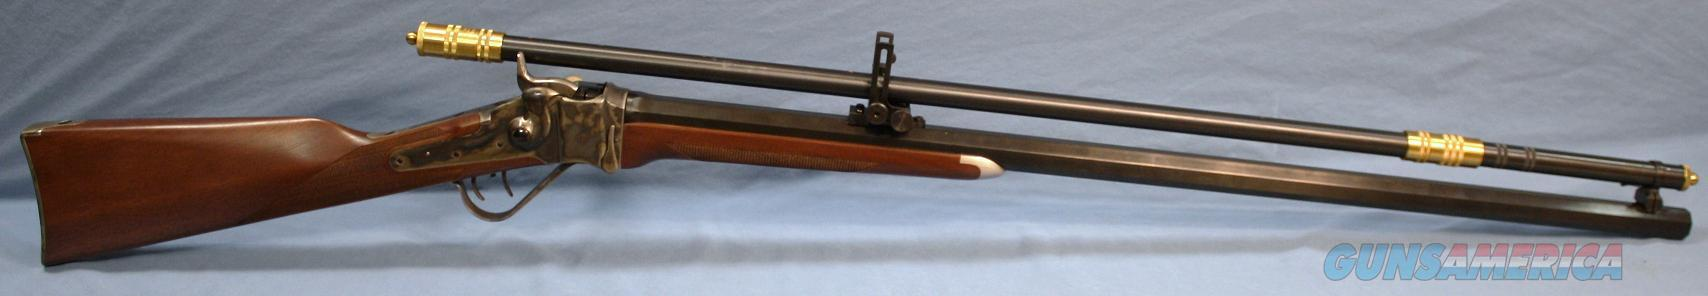 Cimarron Model 1874 Sharps Billy Dixon Single Shot Rifle with Malcolm 6x Scope 38-55 Win  Guns > Rifles > Cimmaron Rifles > Single Shot